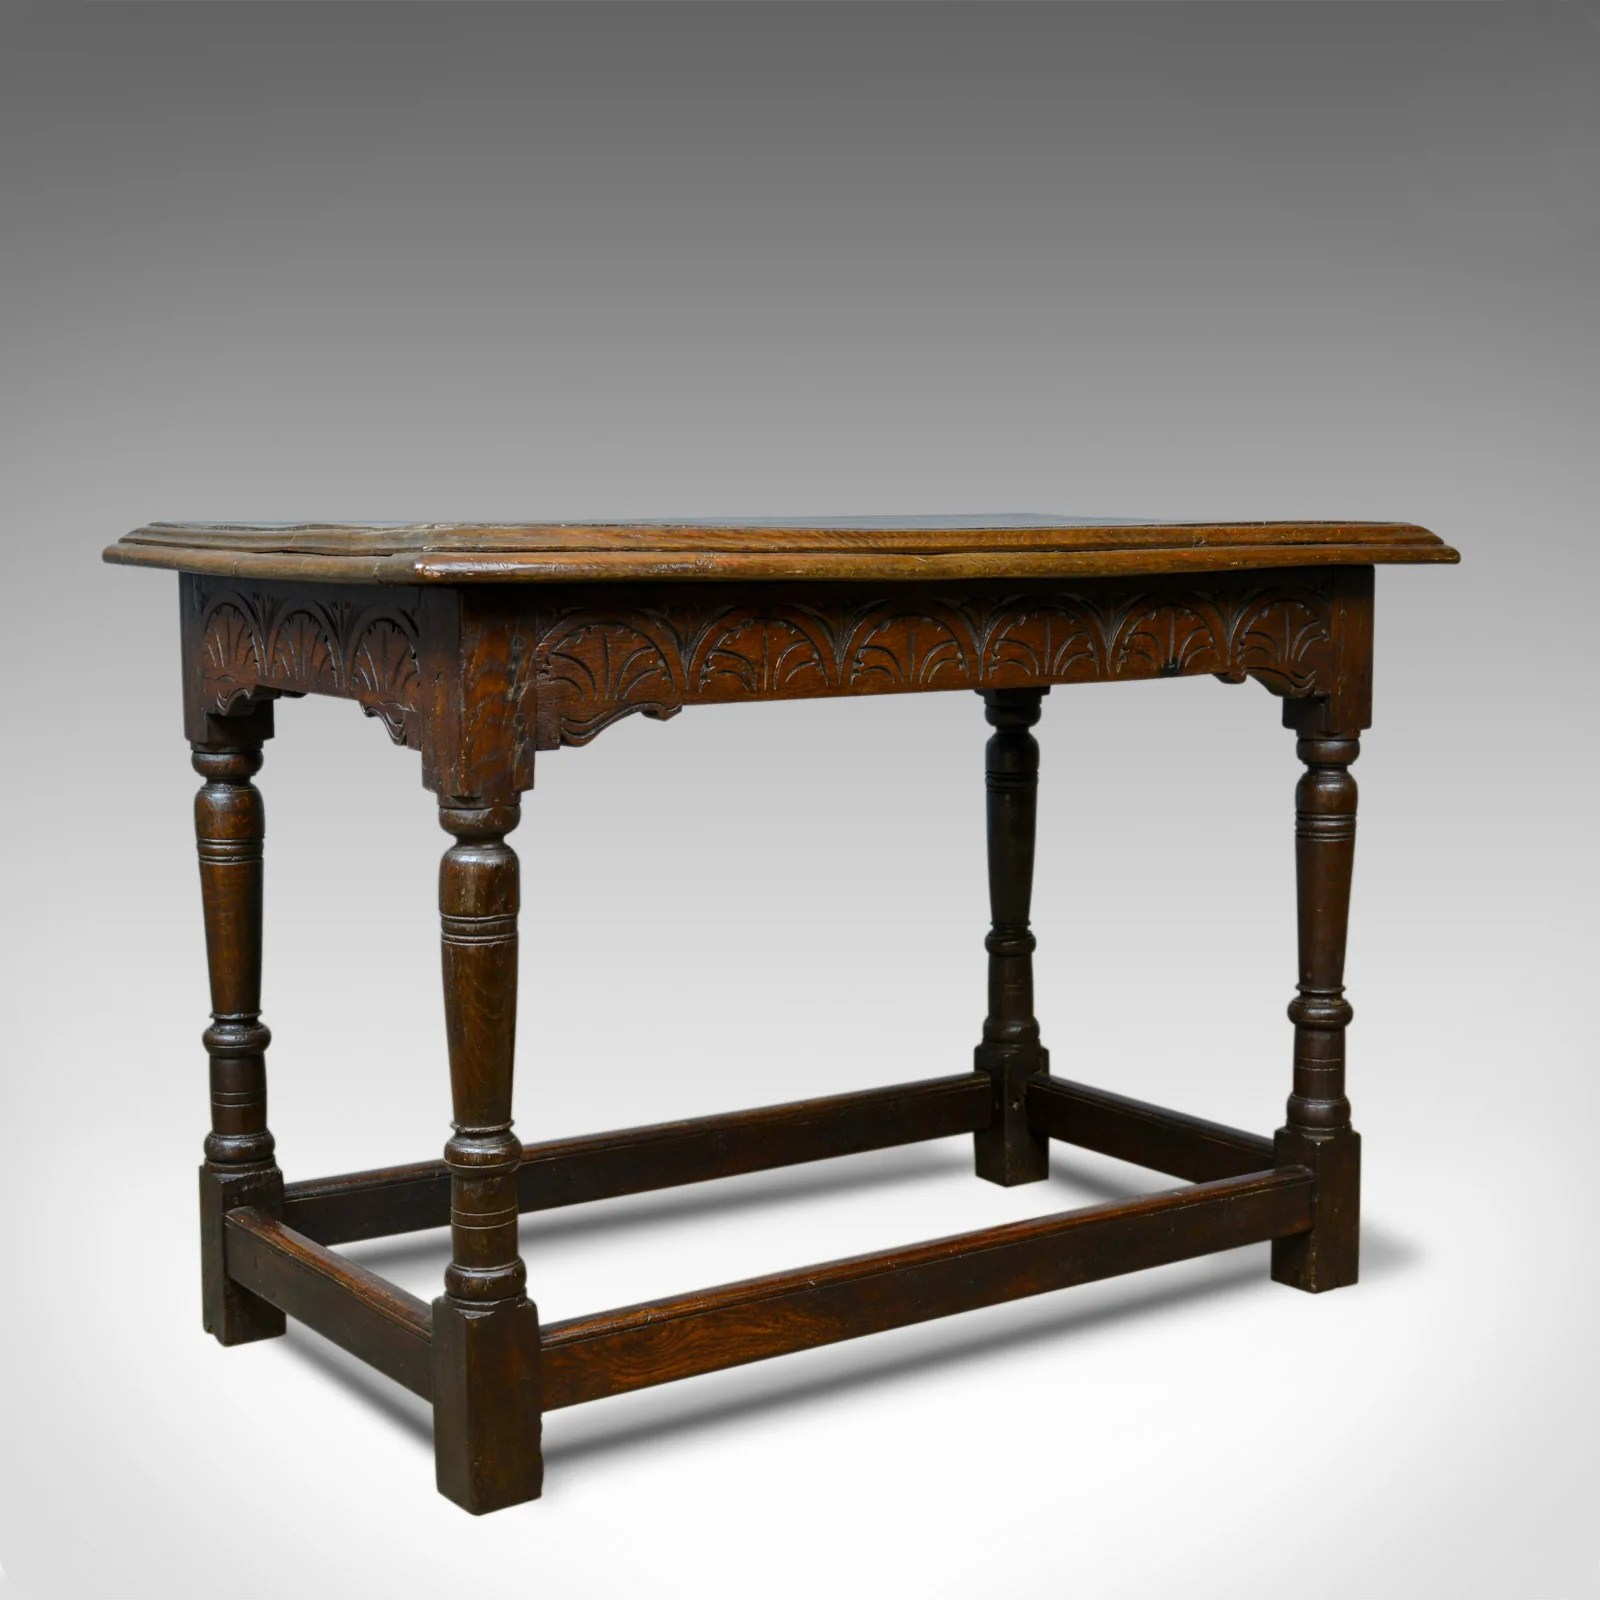 Antique Oak Console Table English Jacobean Revival Refectory C18th And Later Ebay